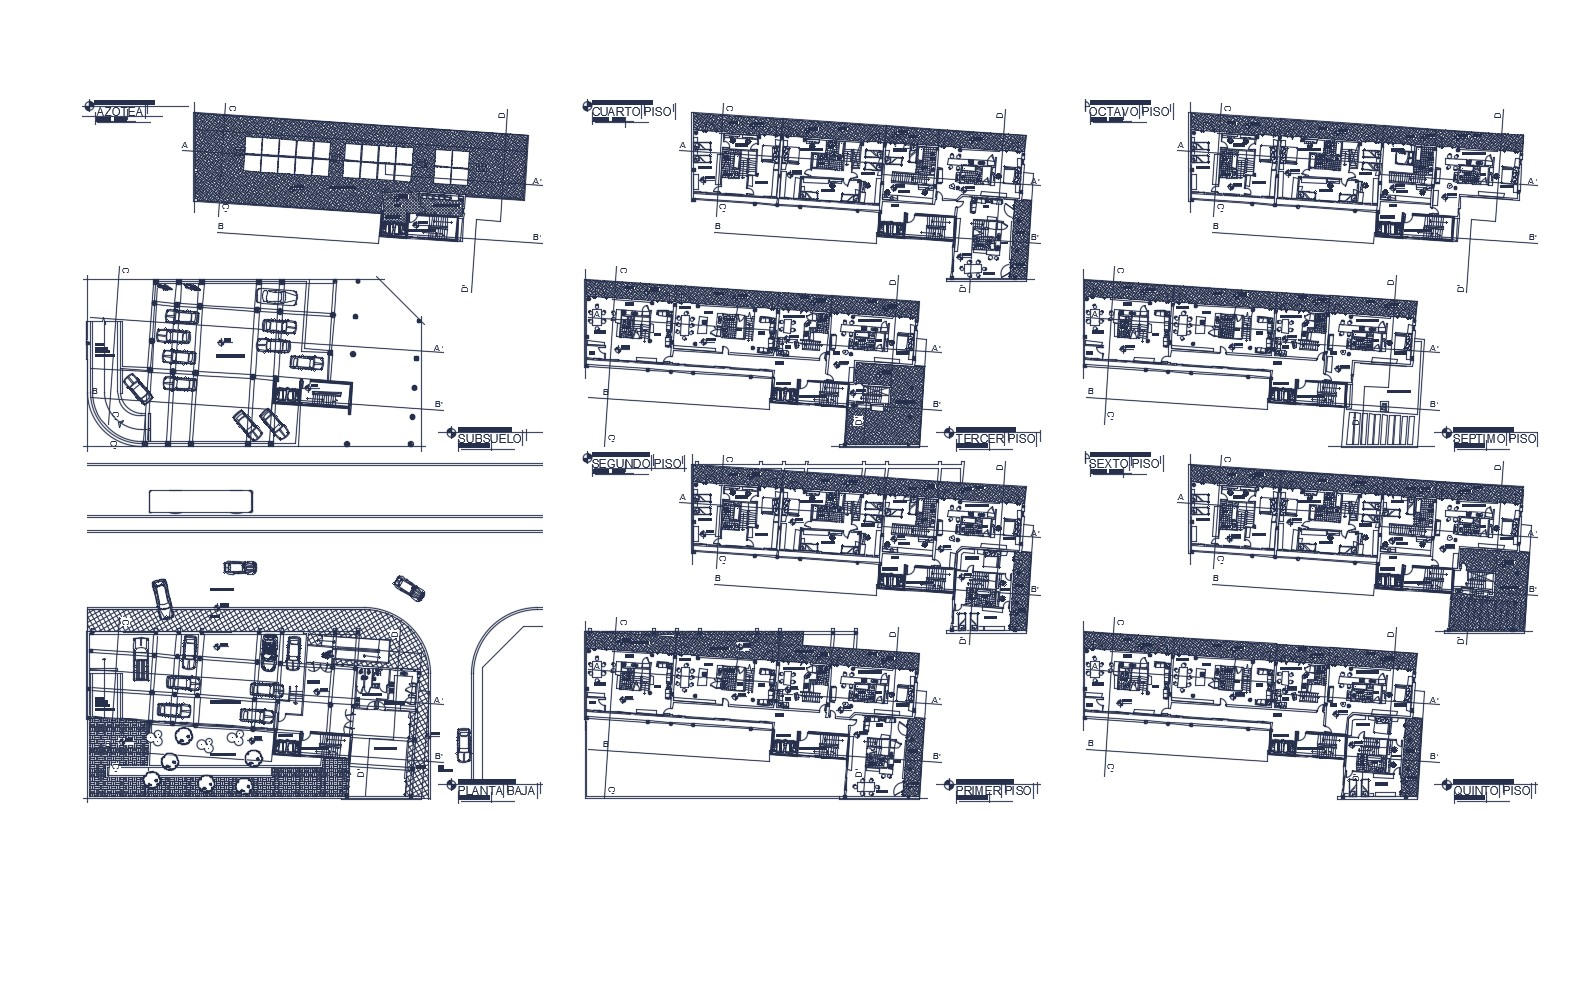 Architectural plan of a residential home with furniture detail in dwg file